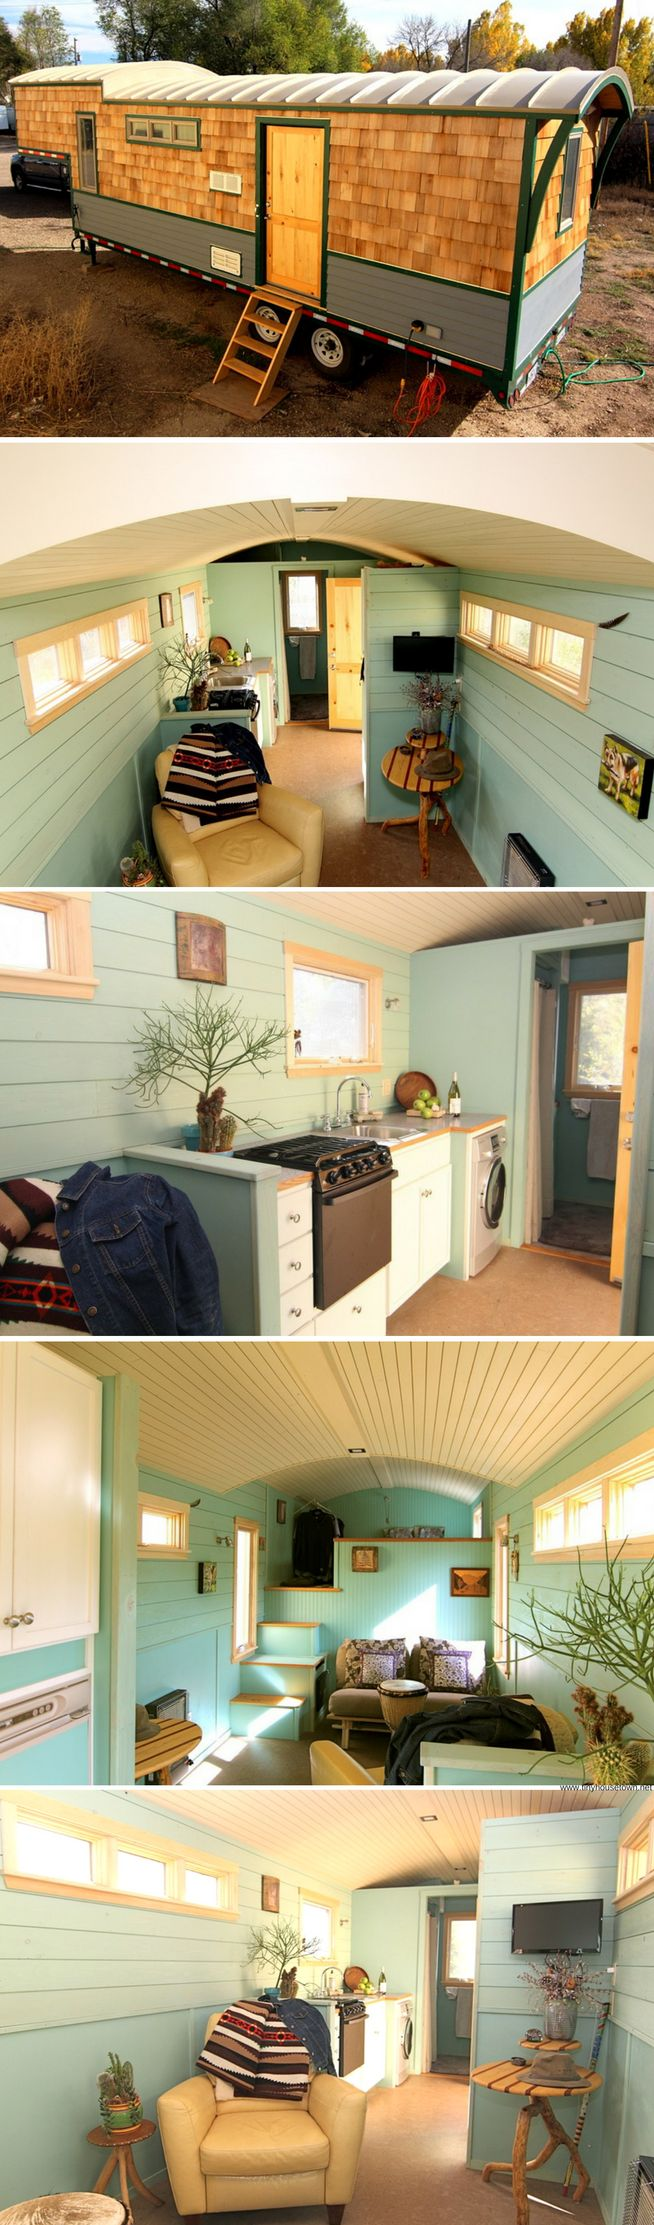 A 256 sq ft tiny house that currently available for sale in Colorado